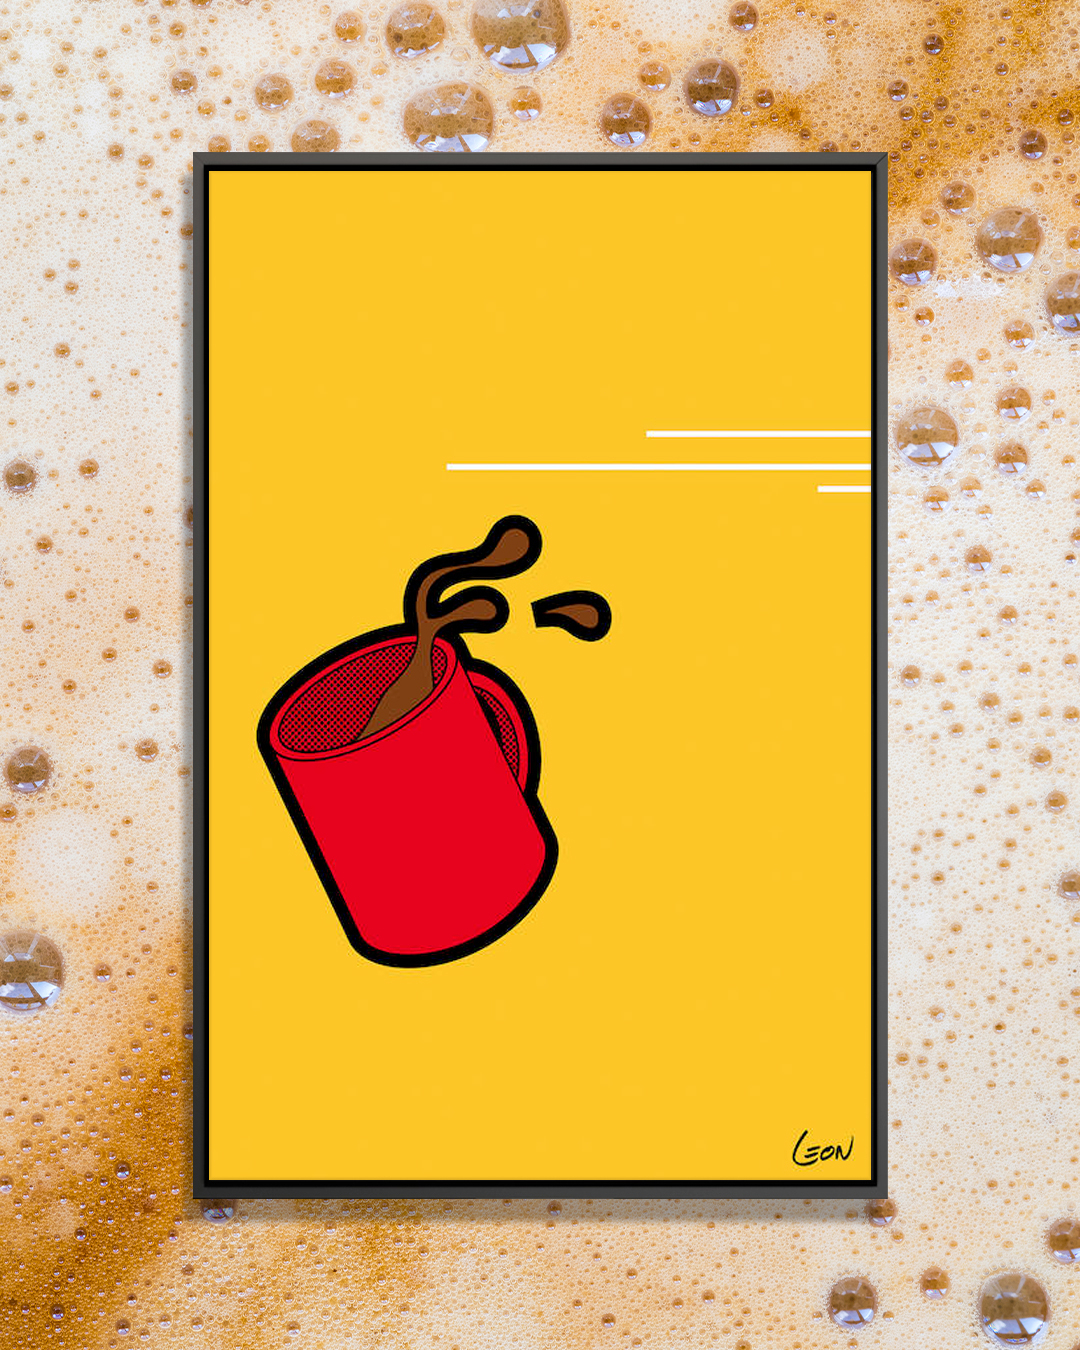 """Flash Morning 1"" by Grégoire ""Léon"" Guillemin shows a red mug mid-fall as coffee spills out against a yellow background."